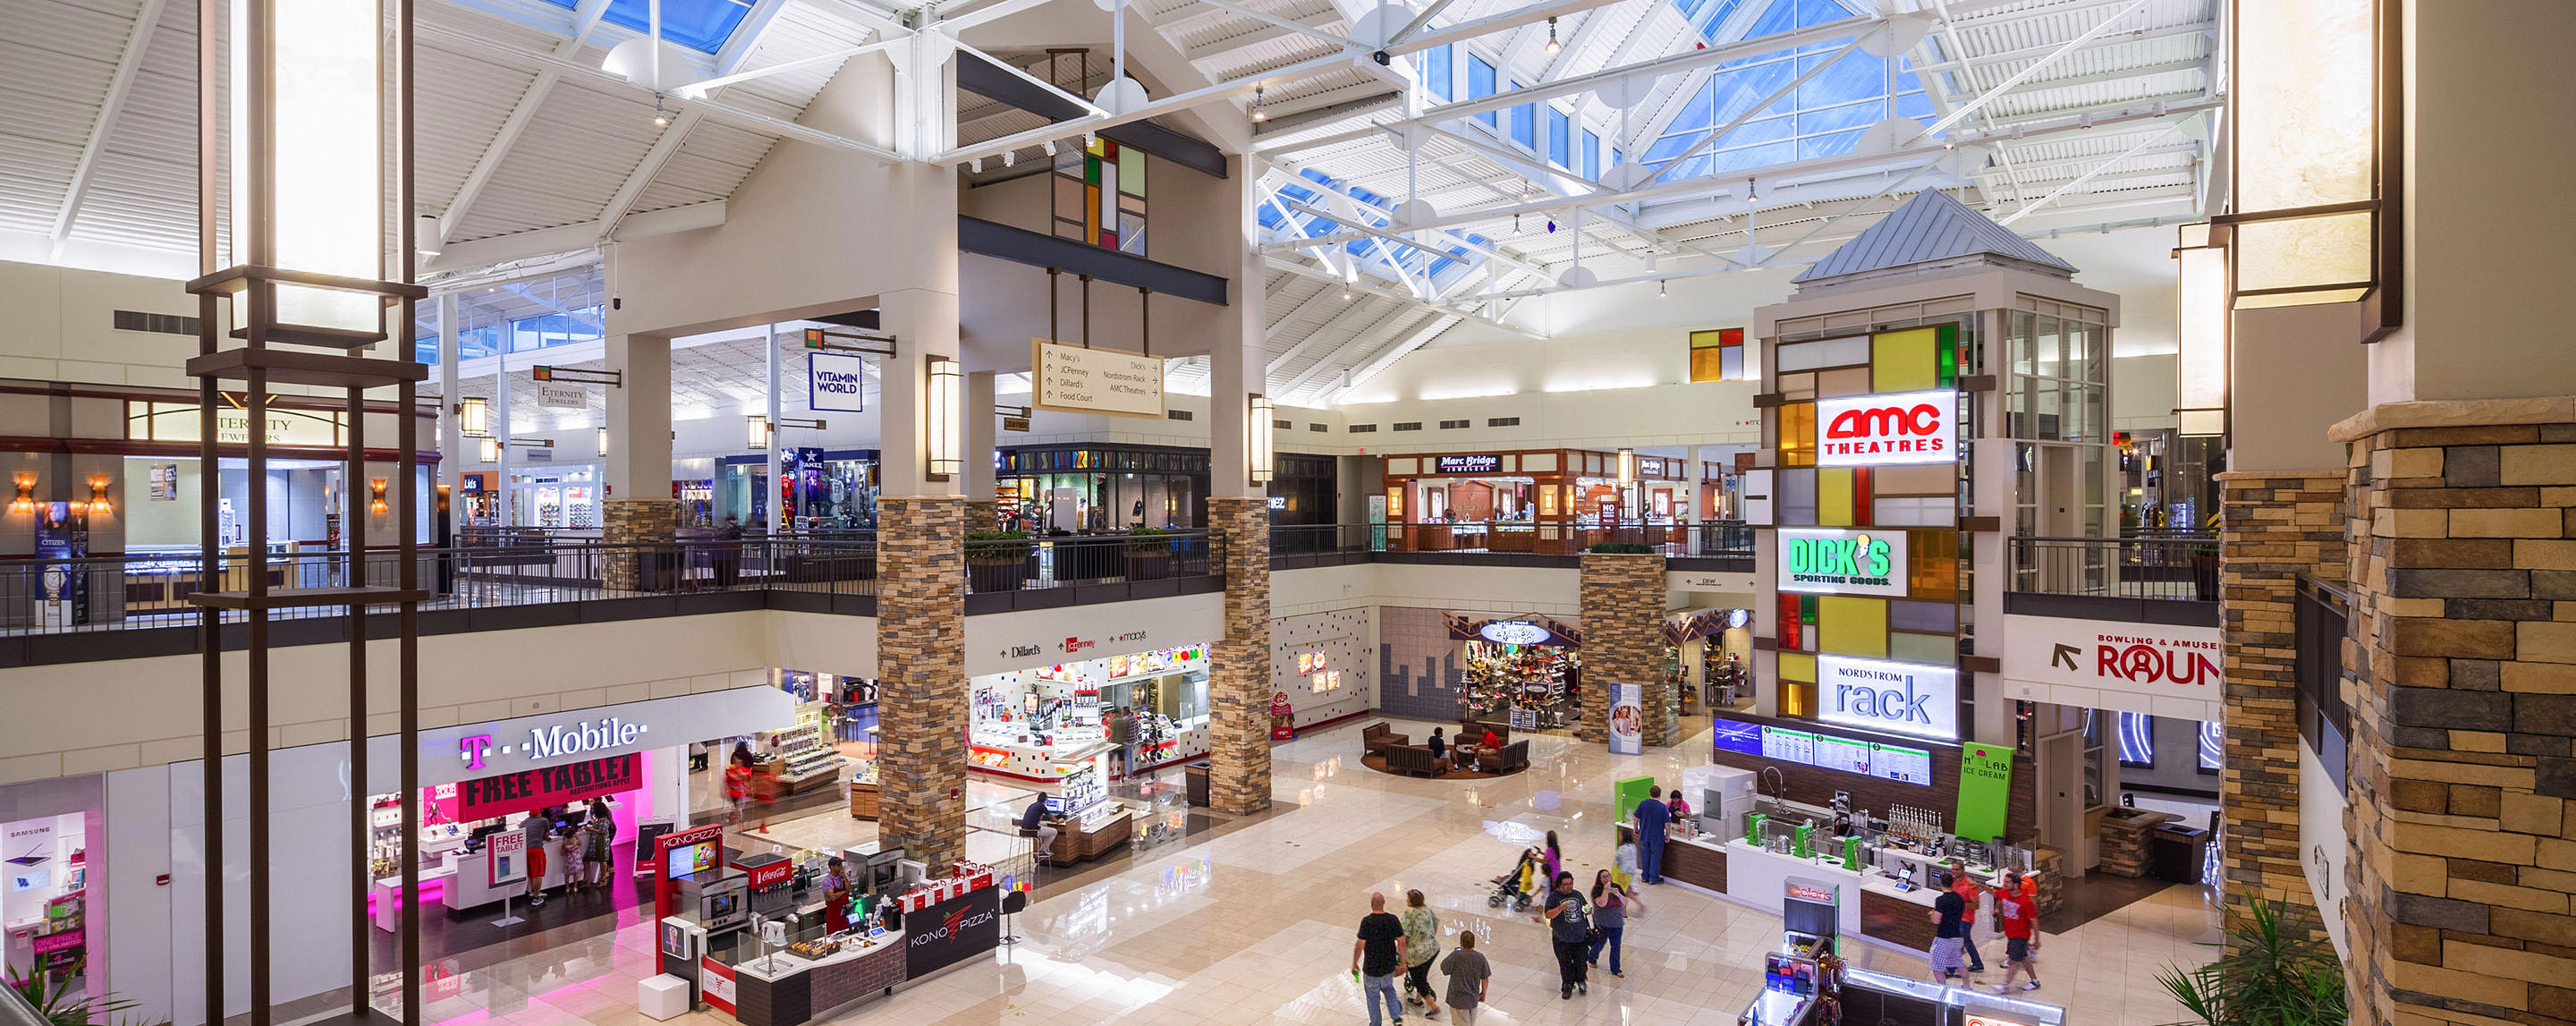 T-Mobile, AMC Theaters, Dick's, Round One, and Nordstrom Rack are some of the businesses located at this semi-crowded mall.